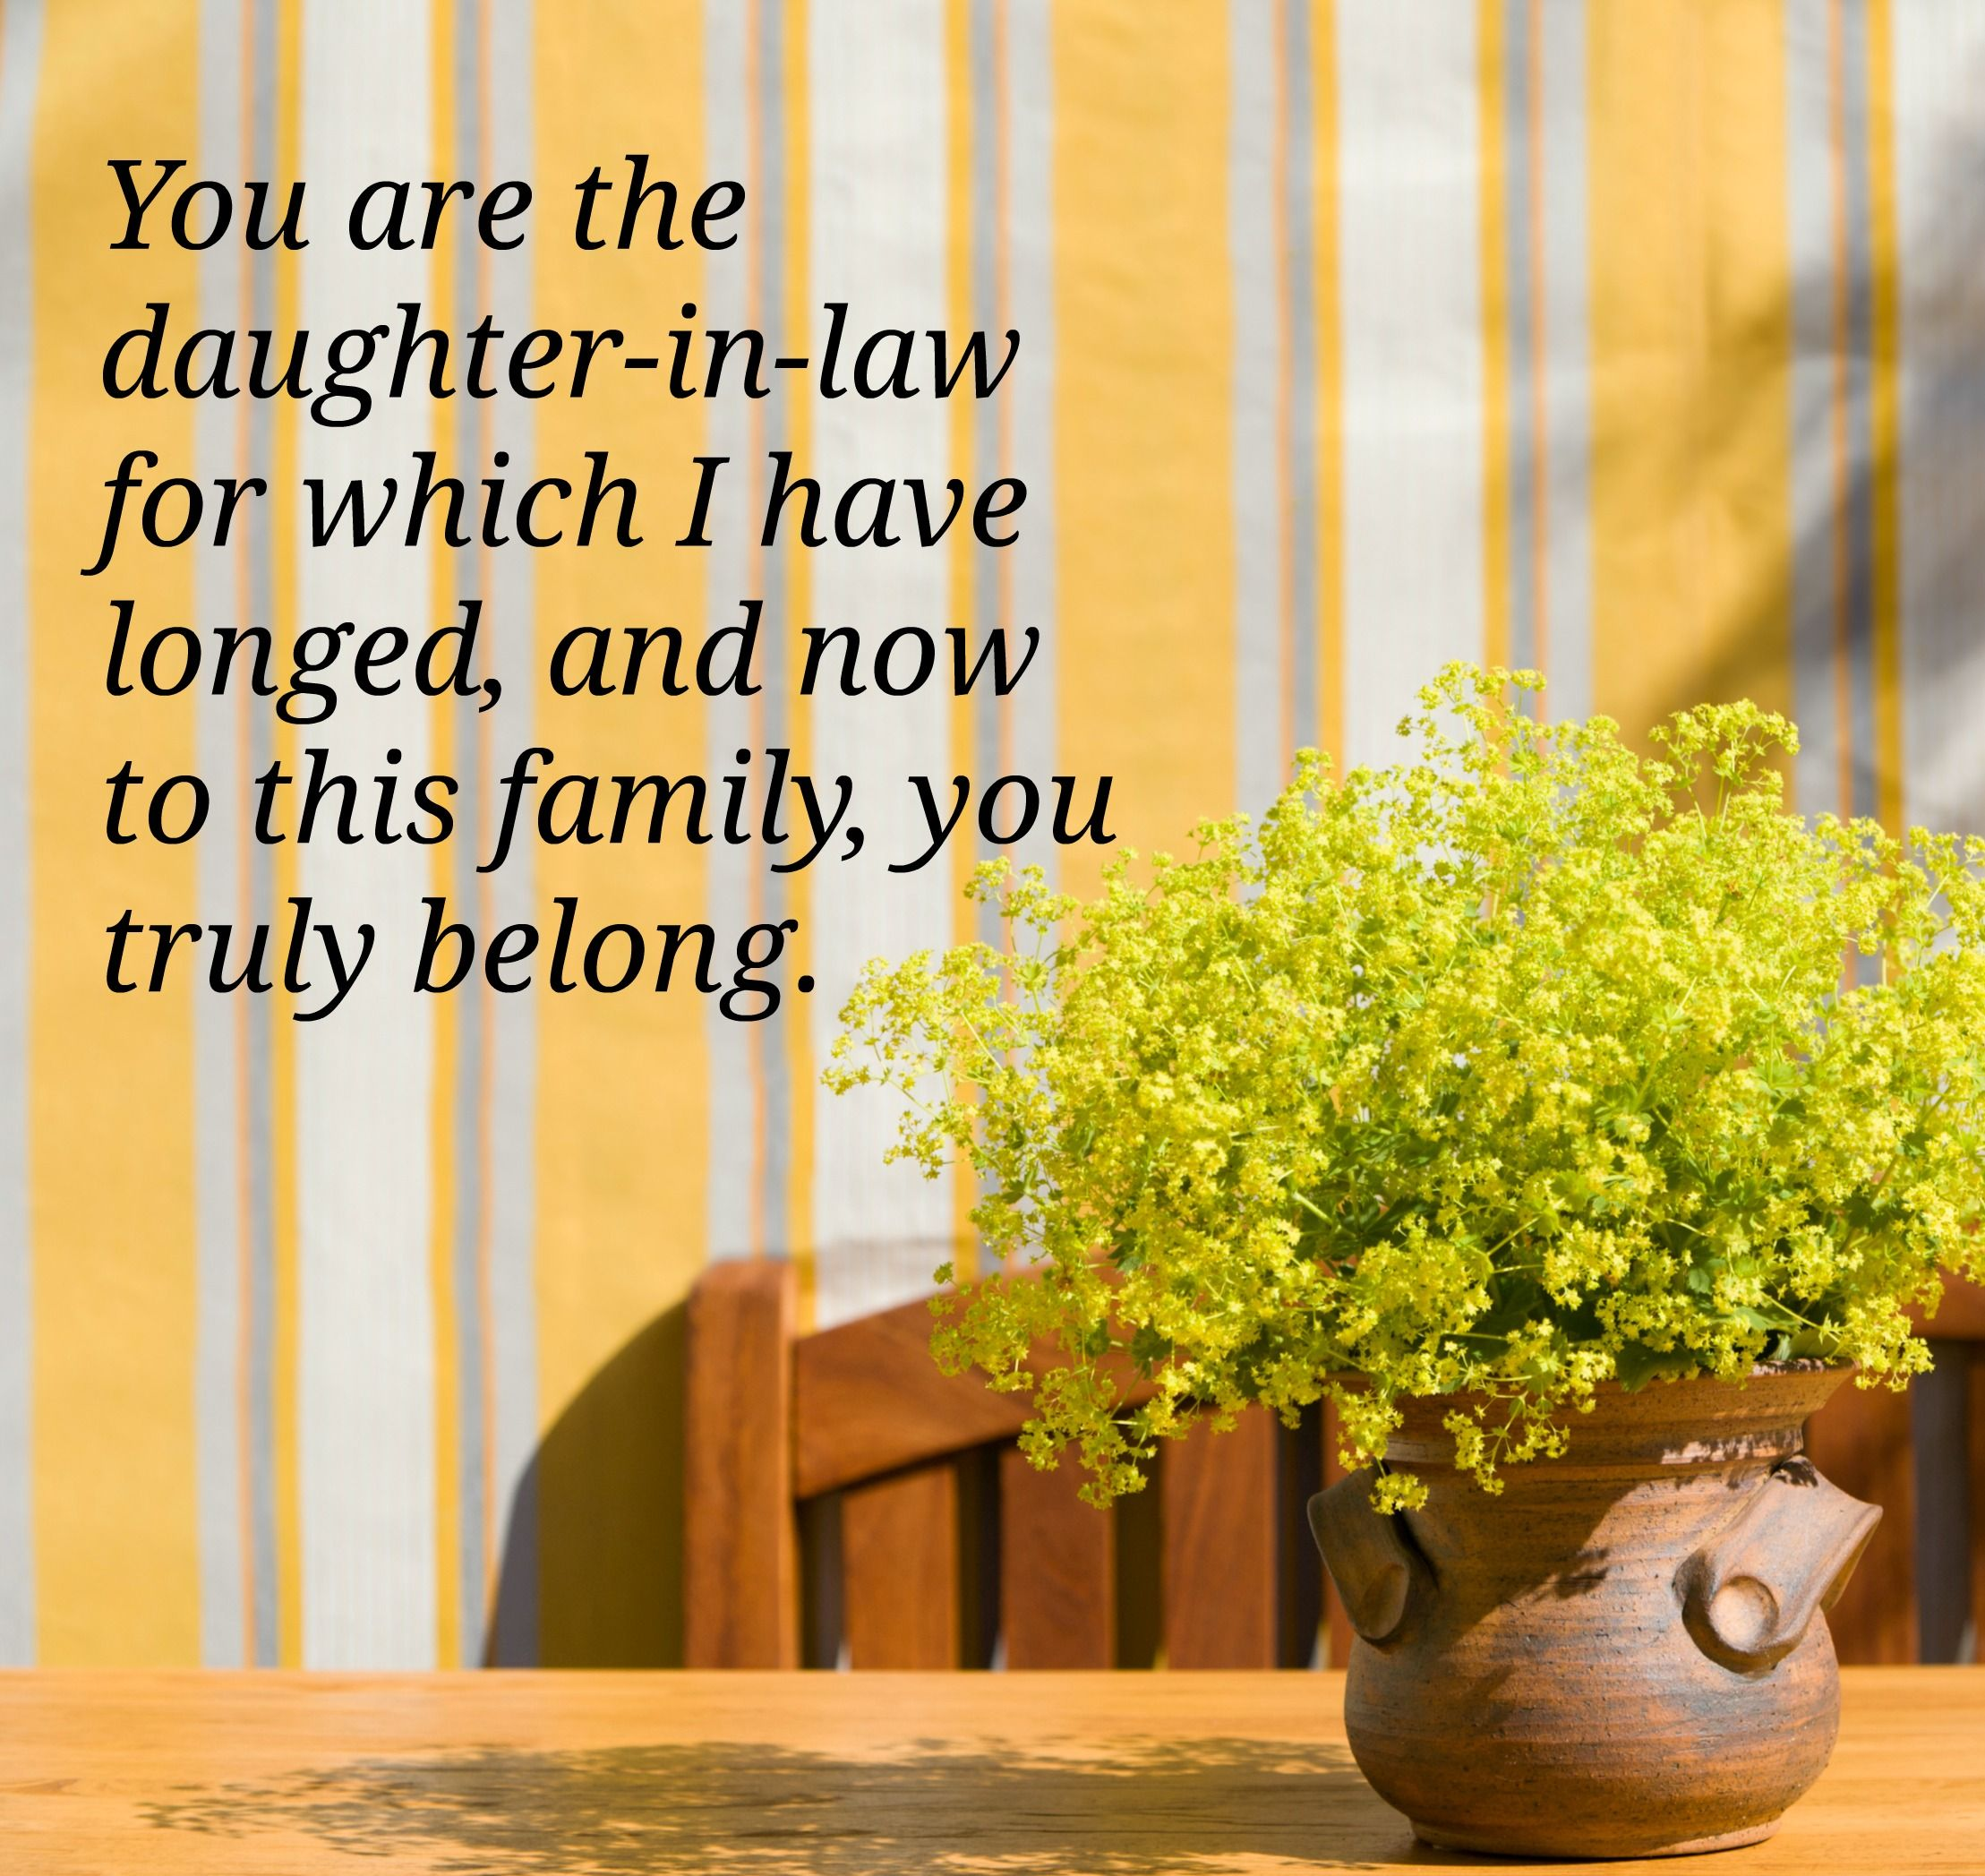 Daughter In Law Quotes To Help Welcome Her Into The Family Daughter In Law Quotes Birthday Quotes For Daughter Daughter In Law